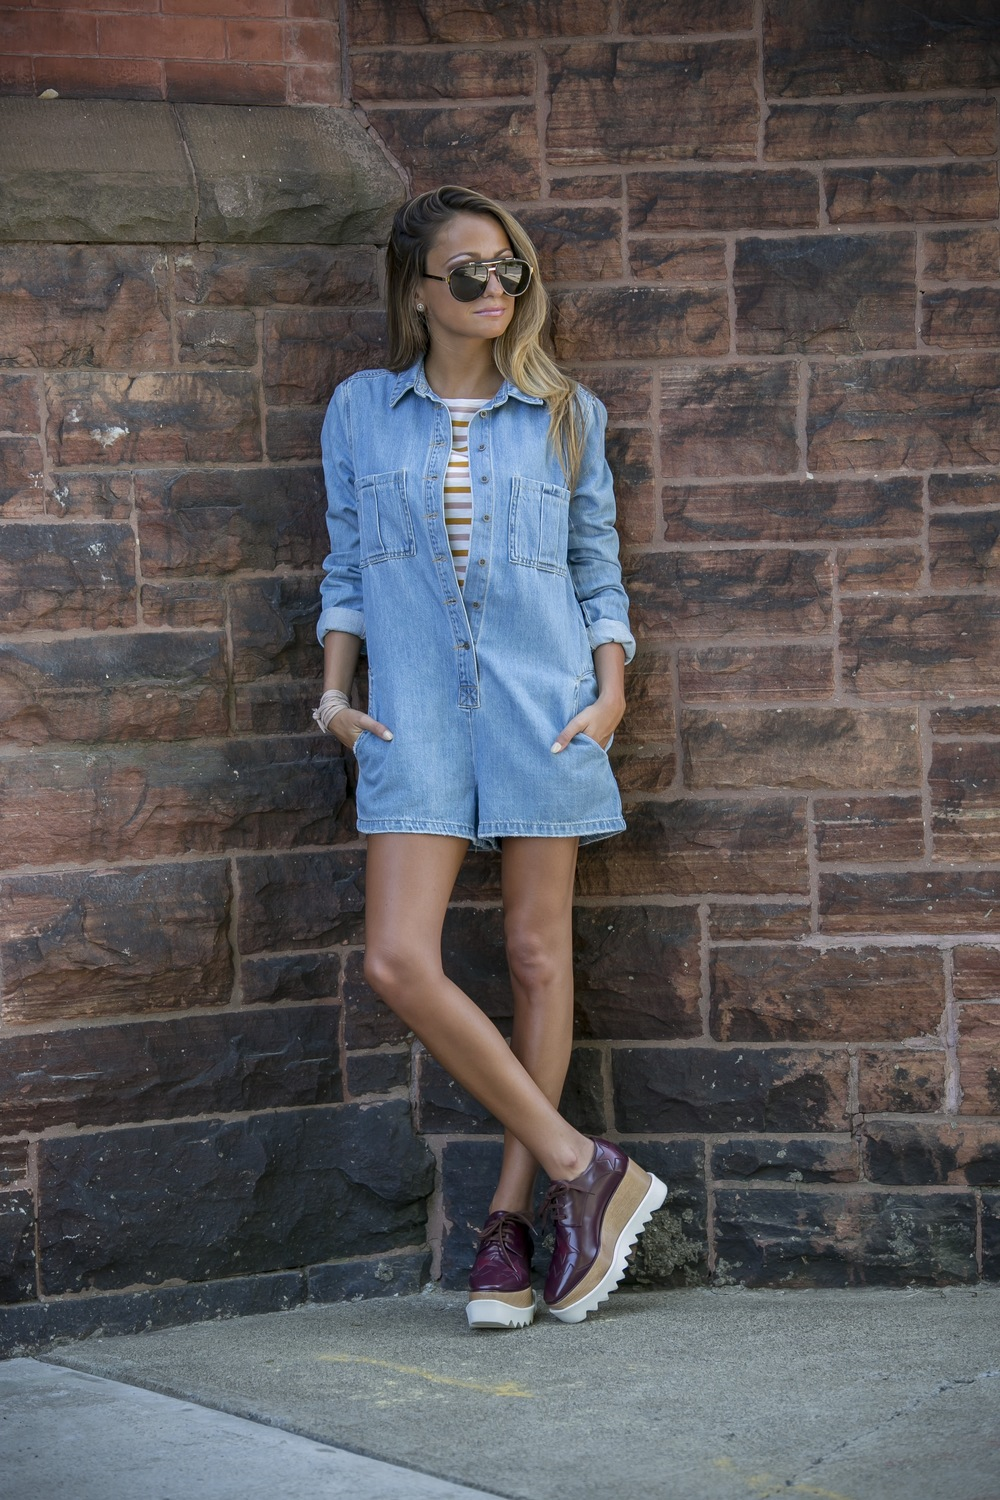 Stella McCartney platforms worn with a denim romper layered with a striped tee